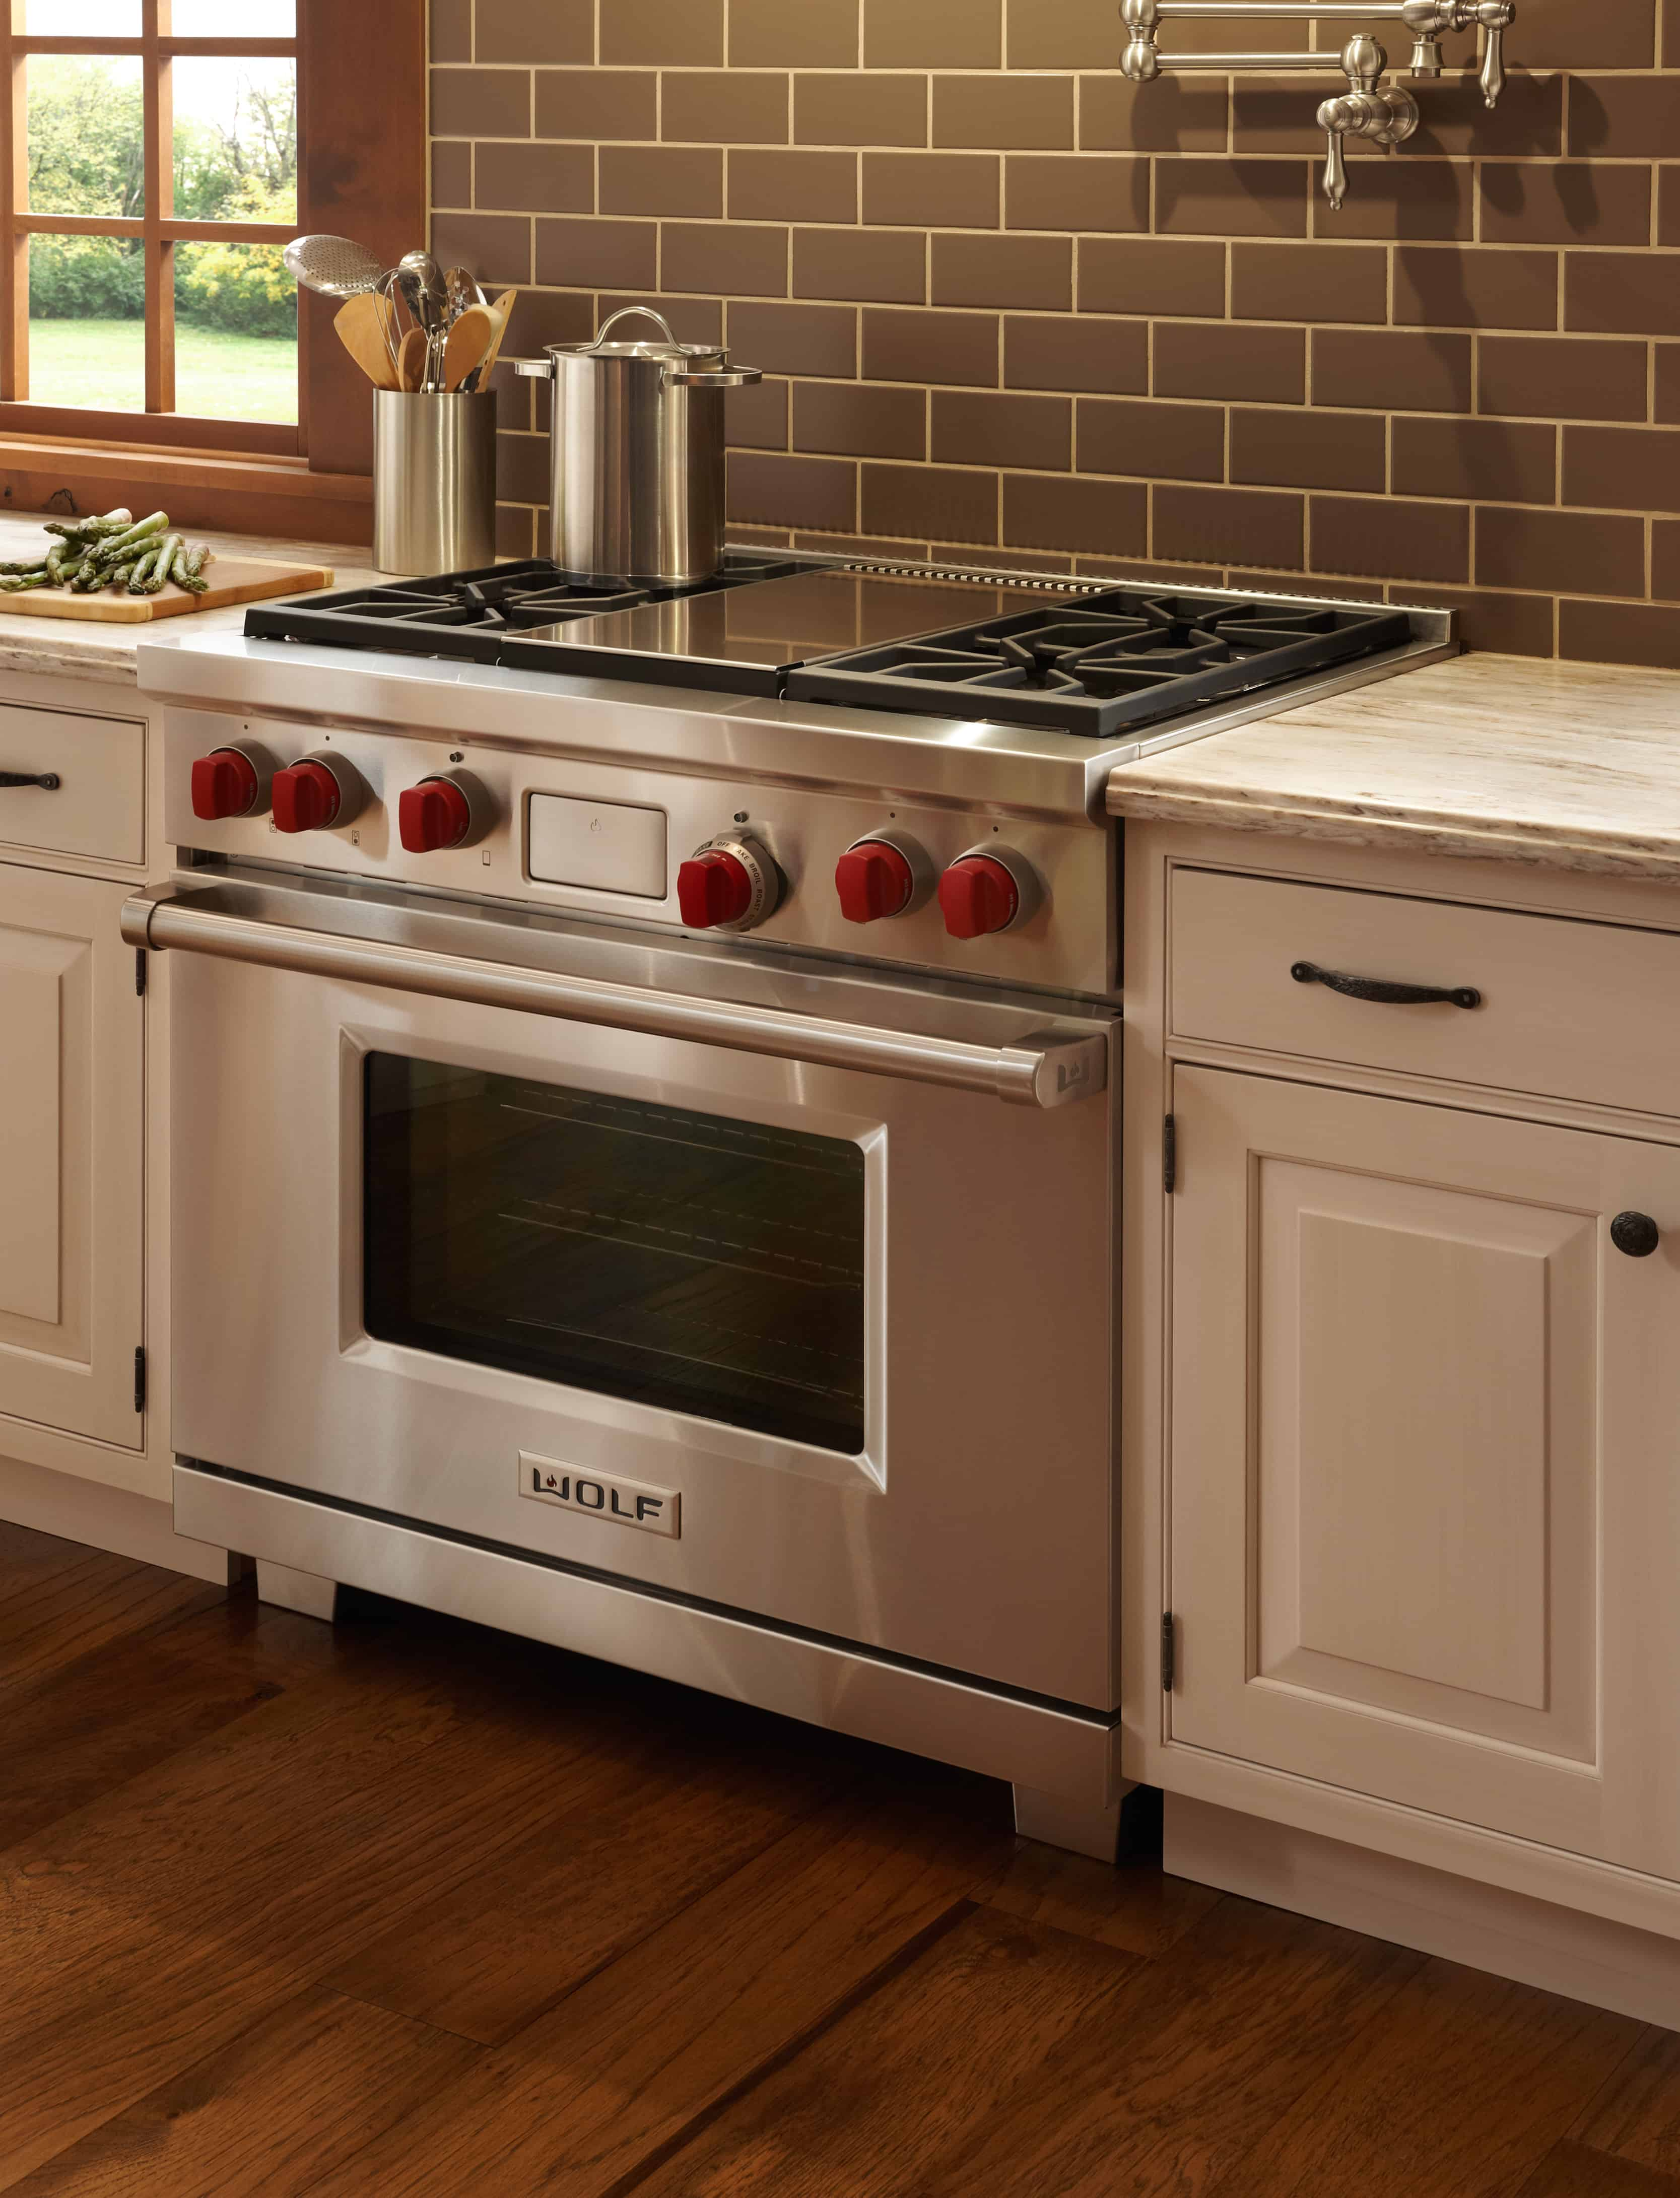 The Wolf Df364g Dual Fuel 36 Inch Range New Kitchen Life